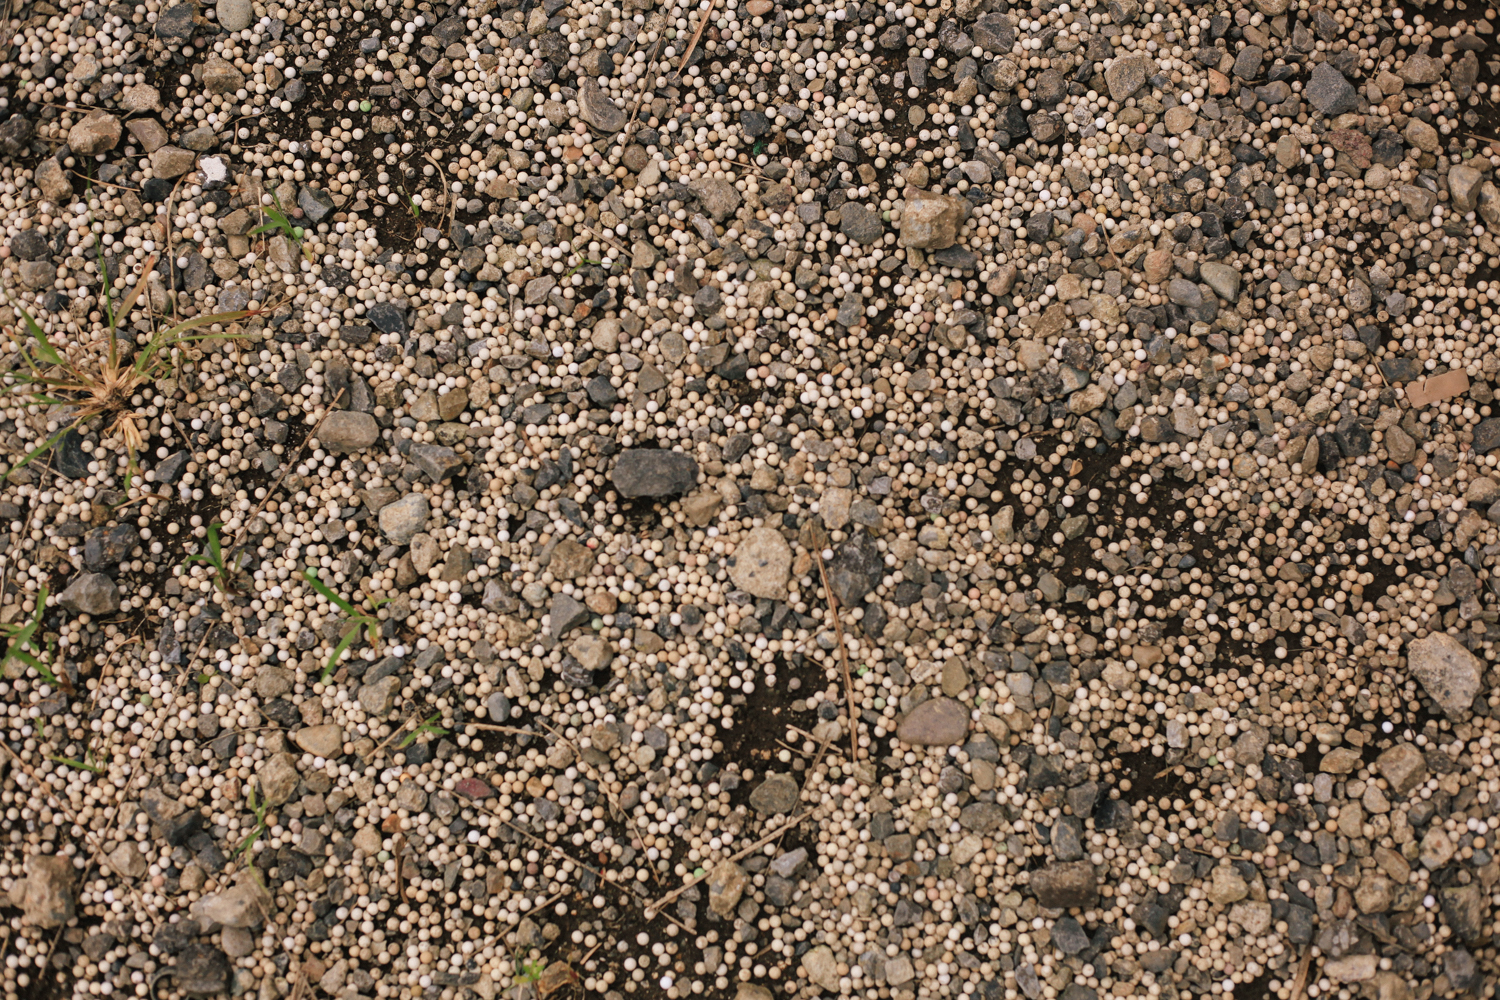 Millions of airsoft pellets litter the ground of this place.